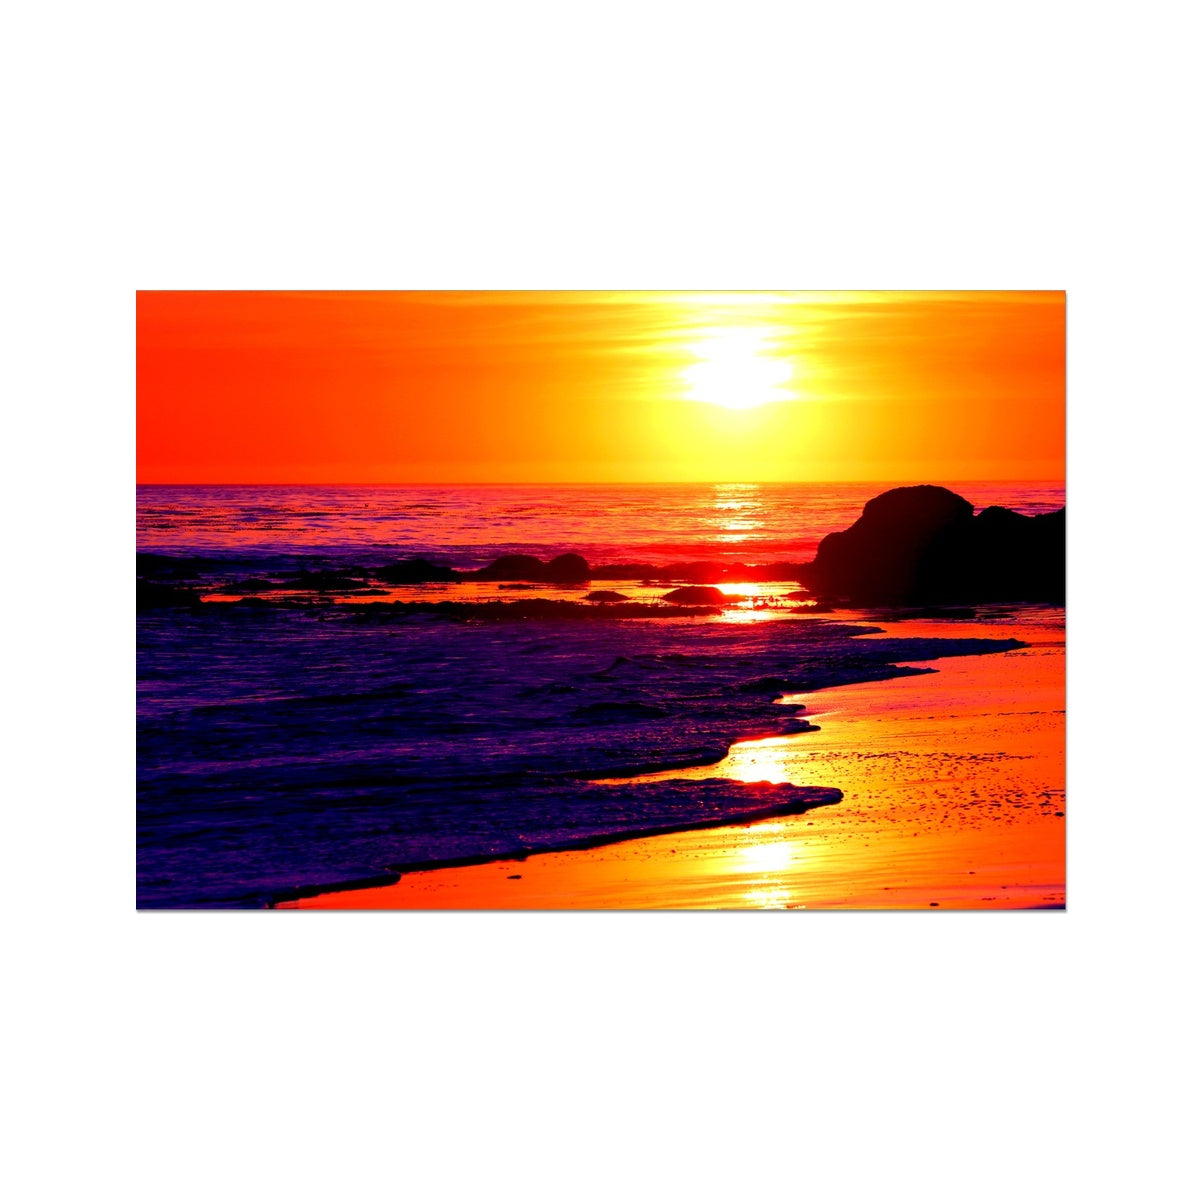 Sunset Dreams - California Photo Art Print